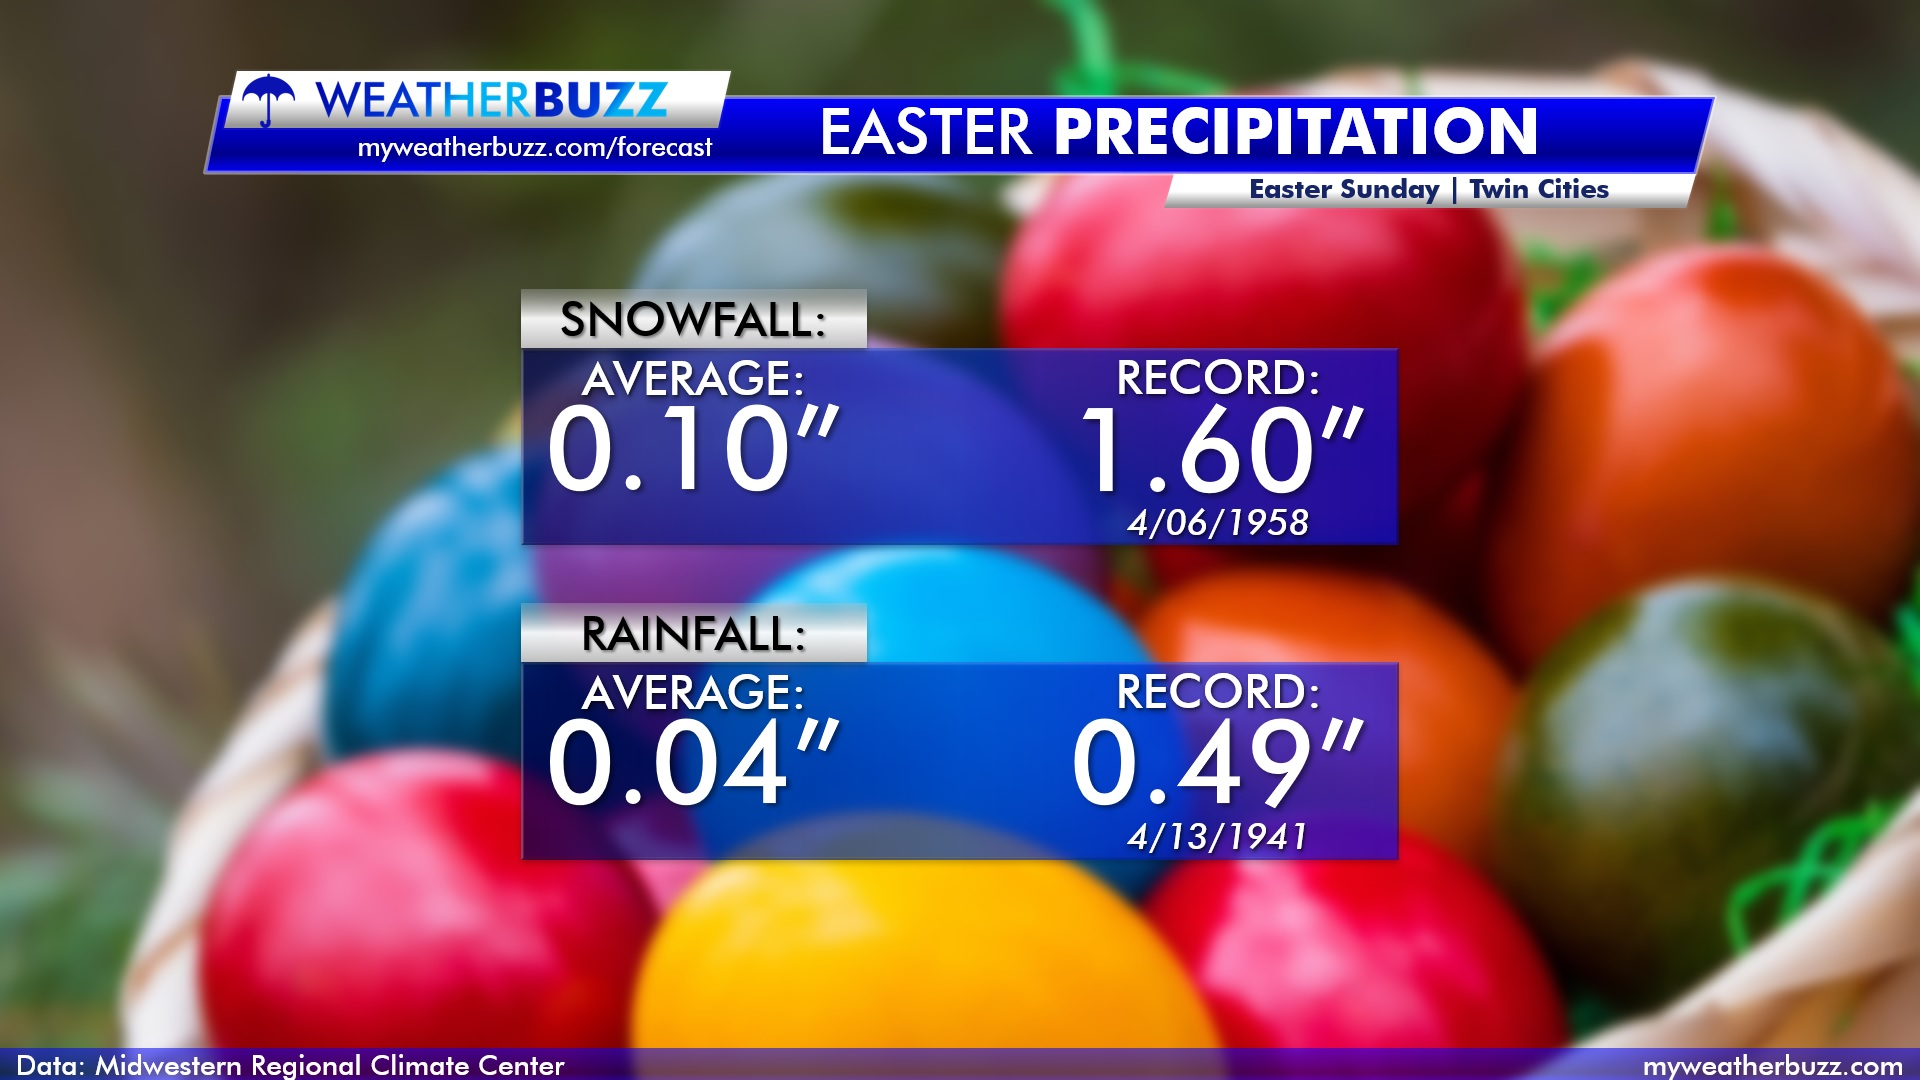 Easter Sunday Precipitation for the Twin Cities